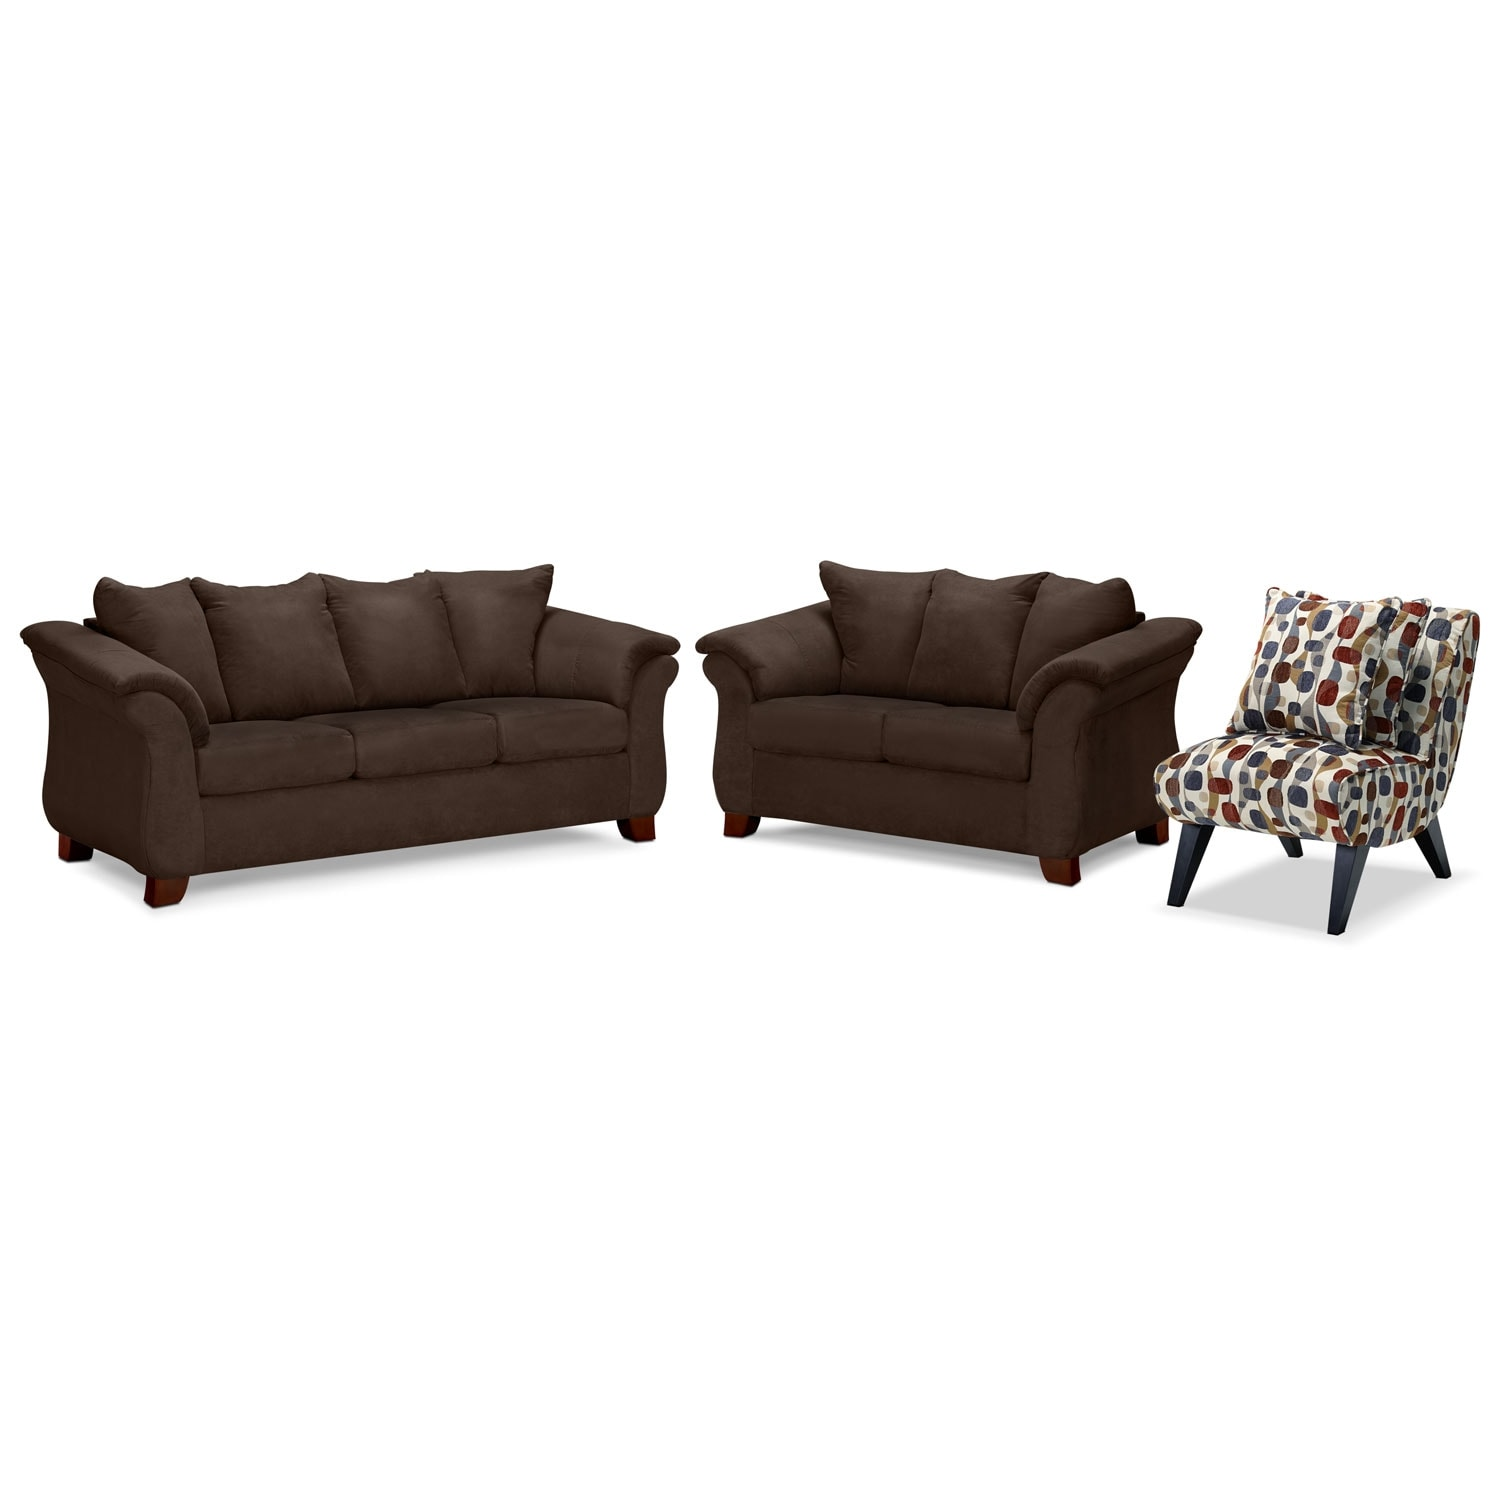 Living Room Furniture - Adrian Chocolate 3 Pc. Living Room w/ Accent Chair